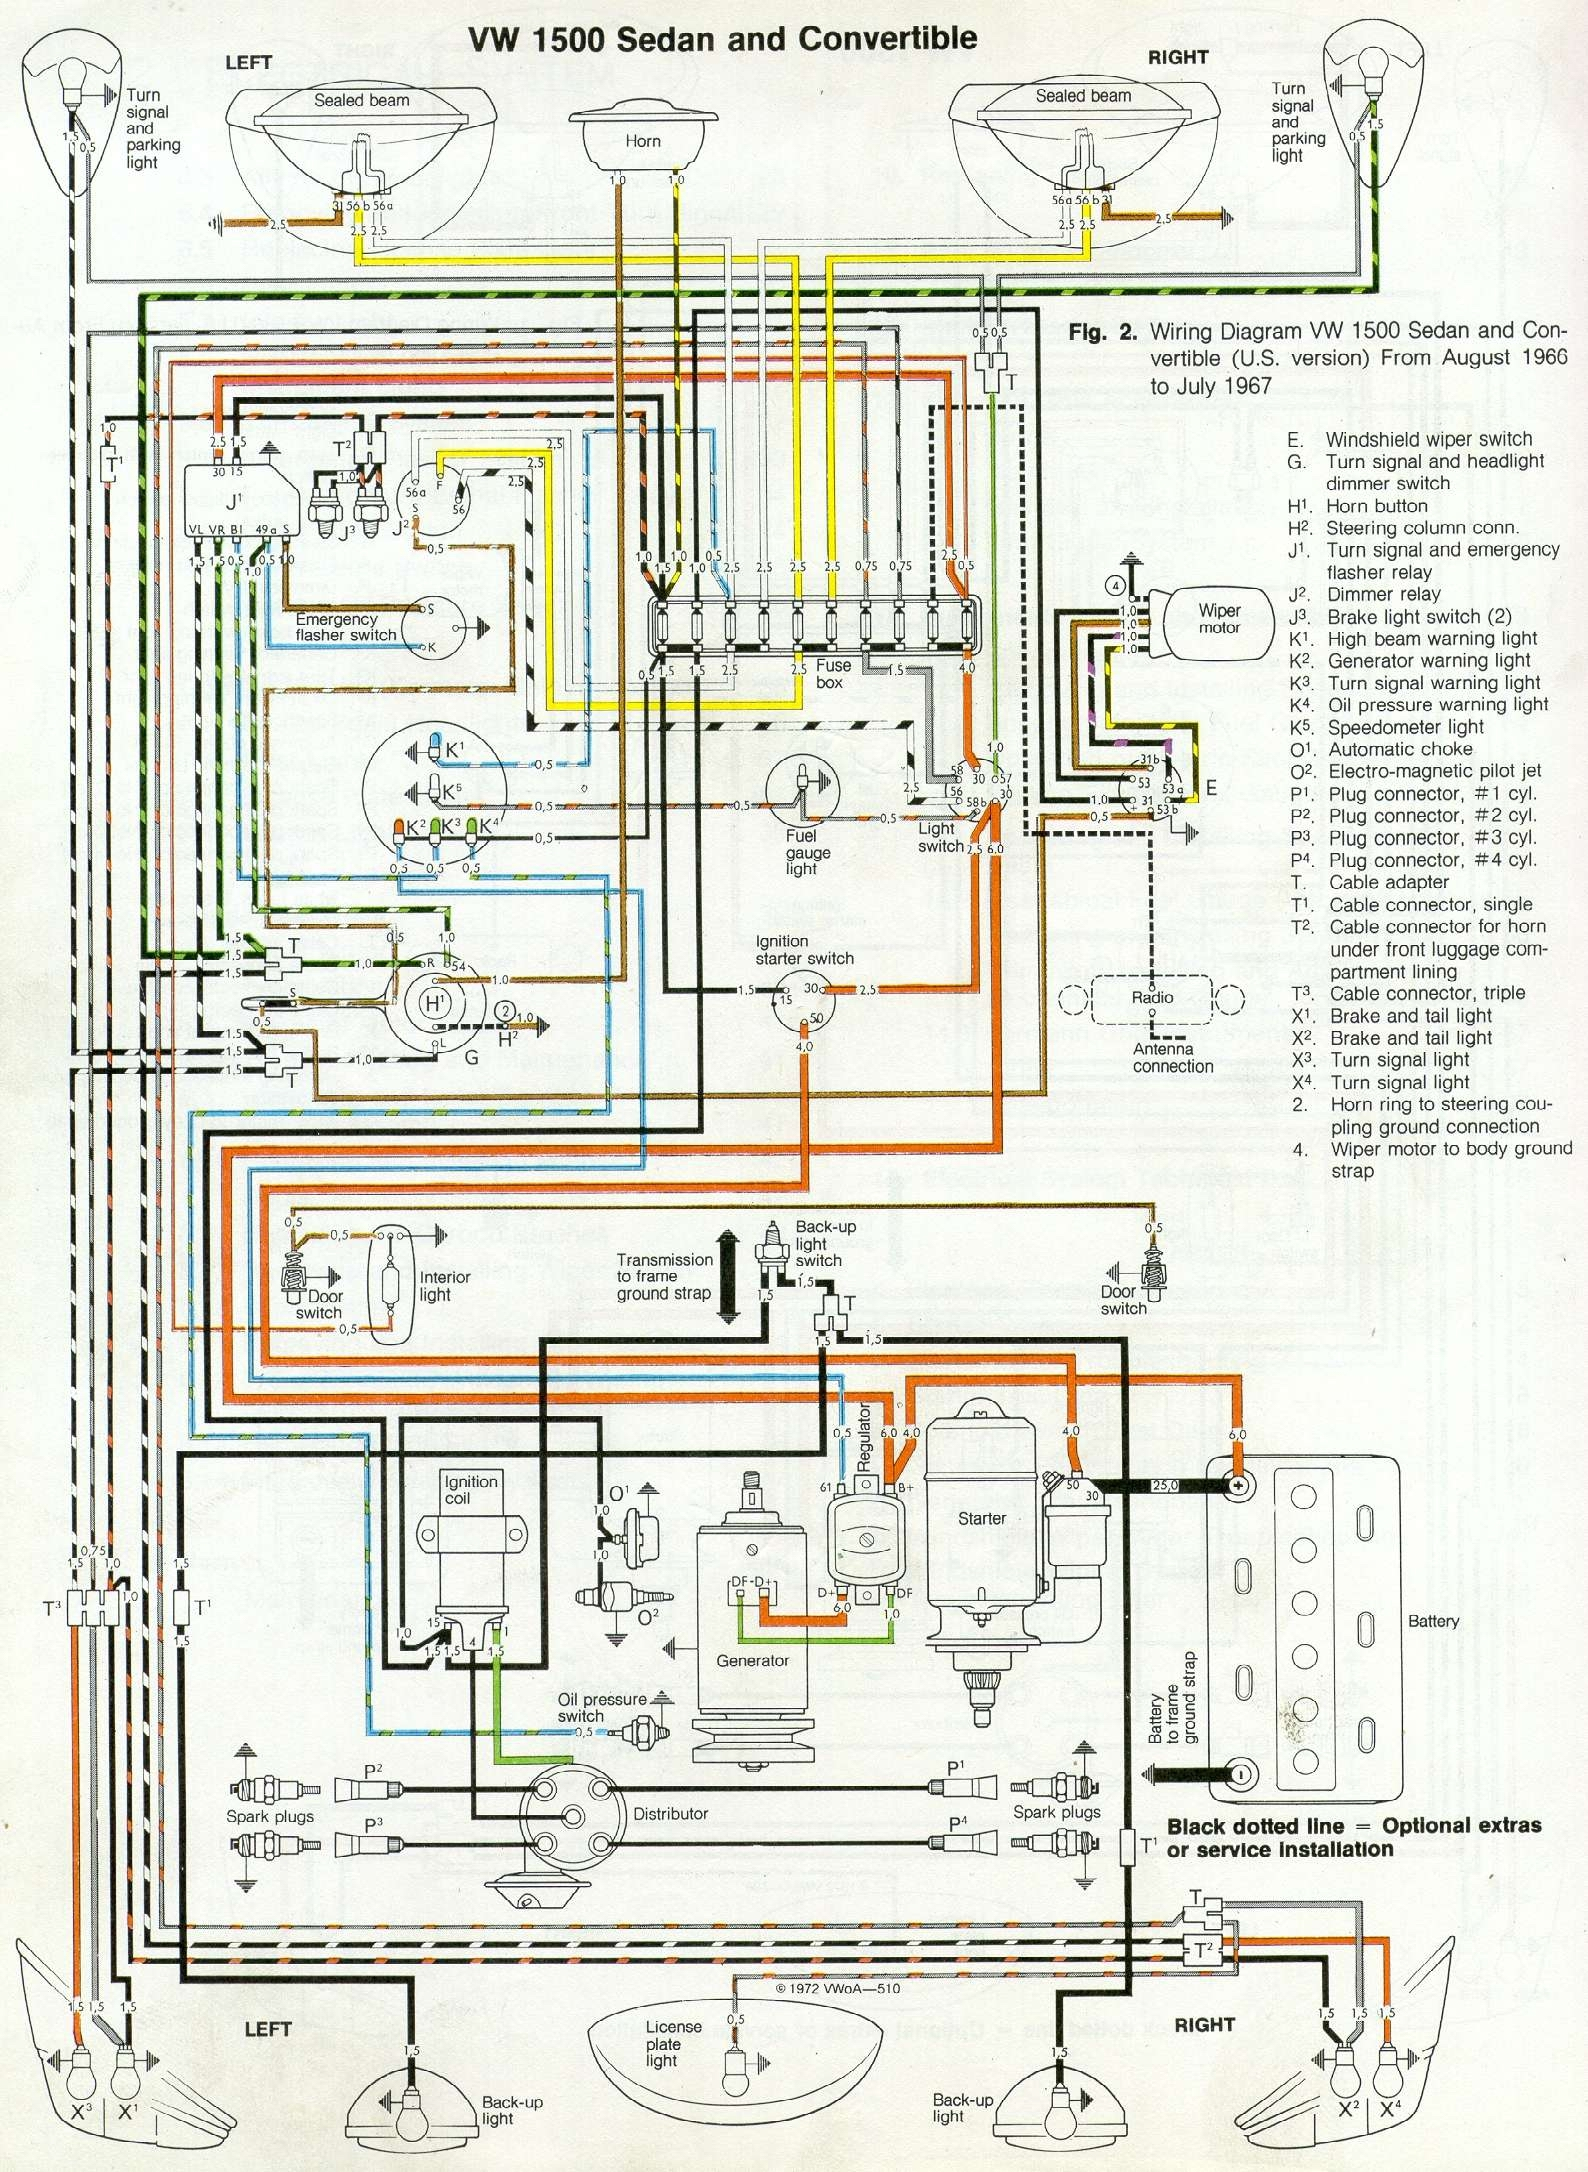 1974 Volkswagen Wiring Diagrams | Wiring Diagram on 1972 vw super beetle wiring harness, 1974 gto wiring harness, 1969 vw beetle wiring harness, painless wiring harness, 1973 super beetle wiring harness, 2002 vw beetle wiring harness, 1974 camaro wiring harness, 1975 beetle wiring harness, 1974 corvette wiring harness, 1974 engine wiring harness, 1970 vw beetle wiring harness,